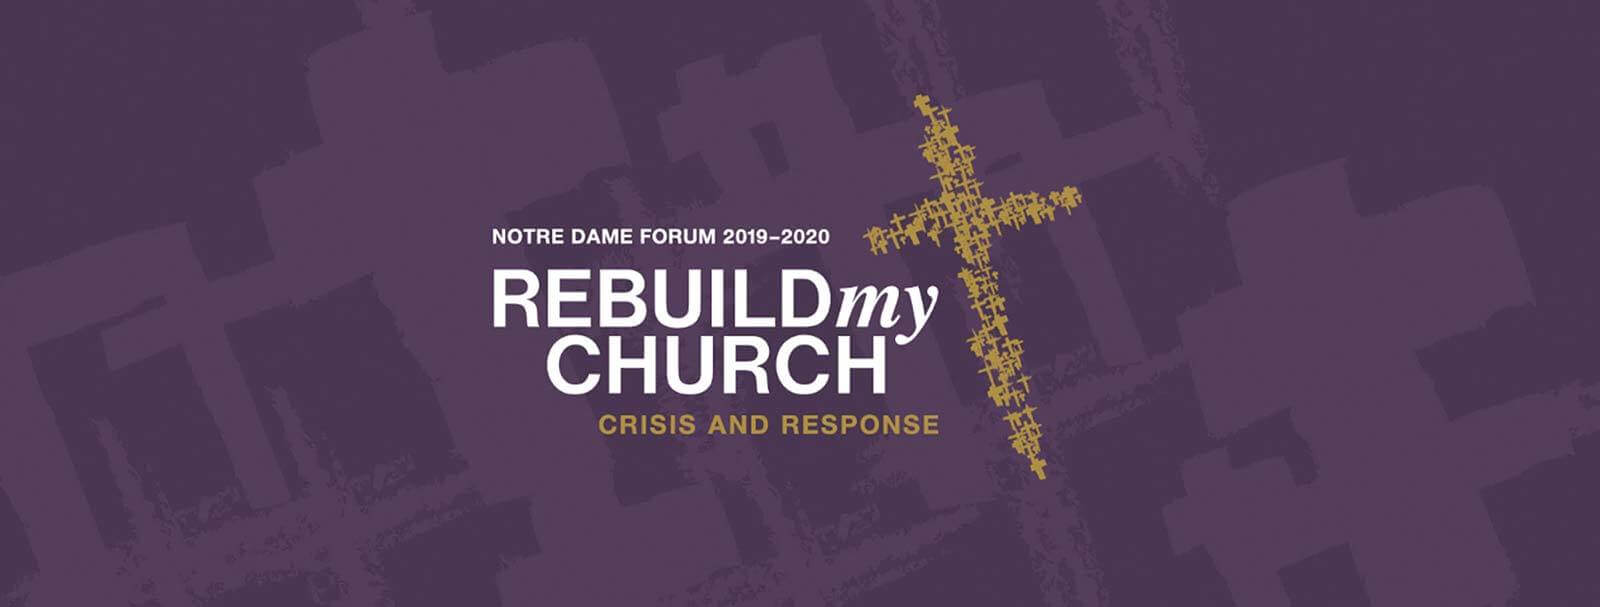 Rebuild my Church forum logo.